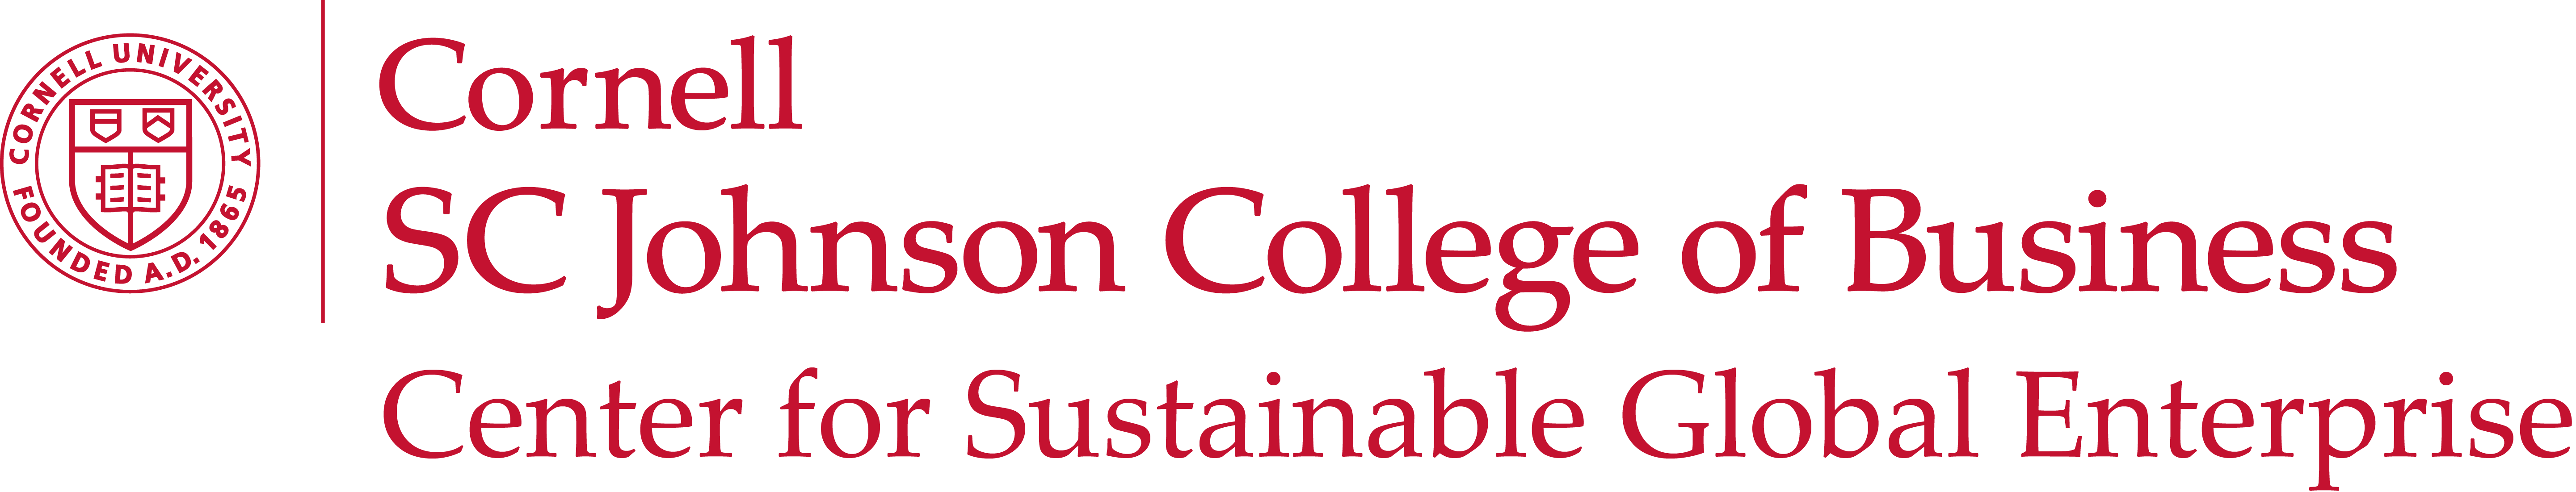 Cornell University Logo: Click to open university website